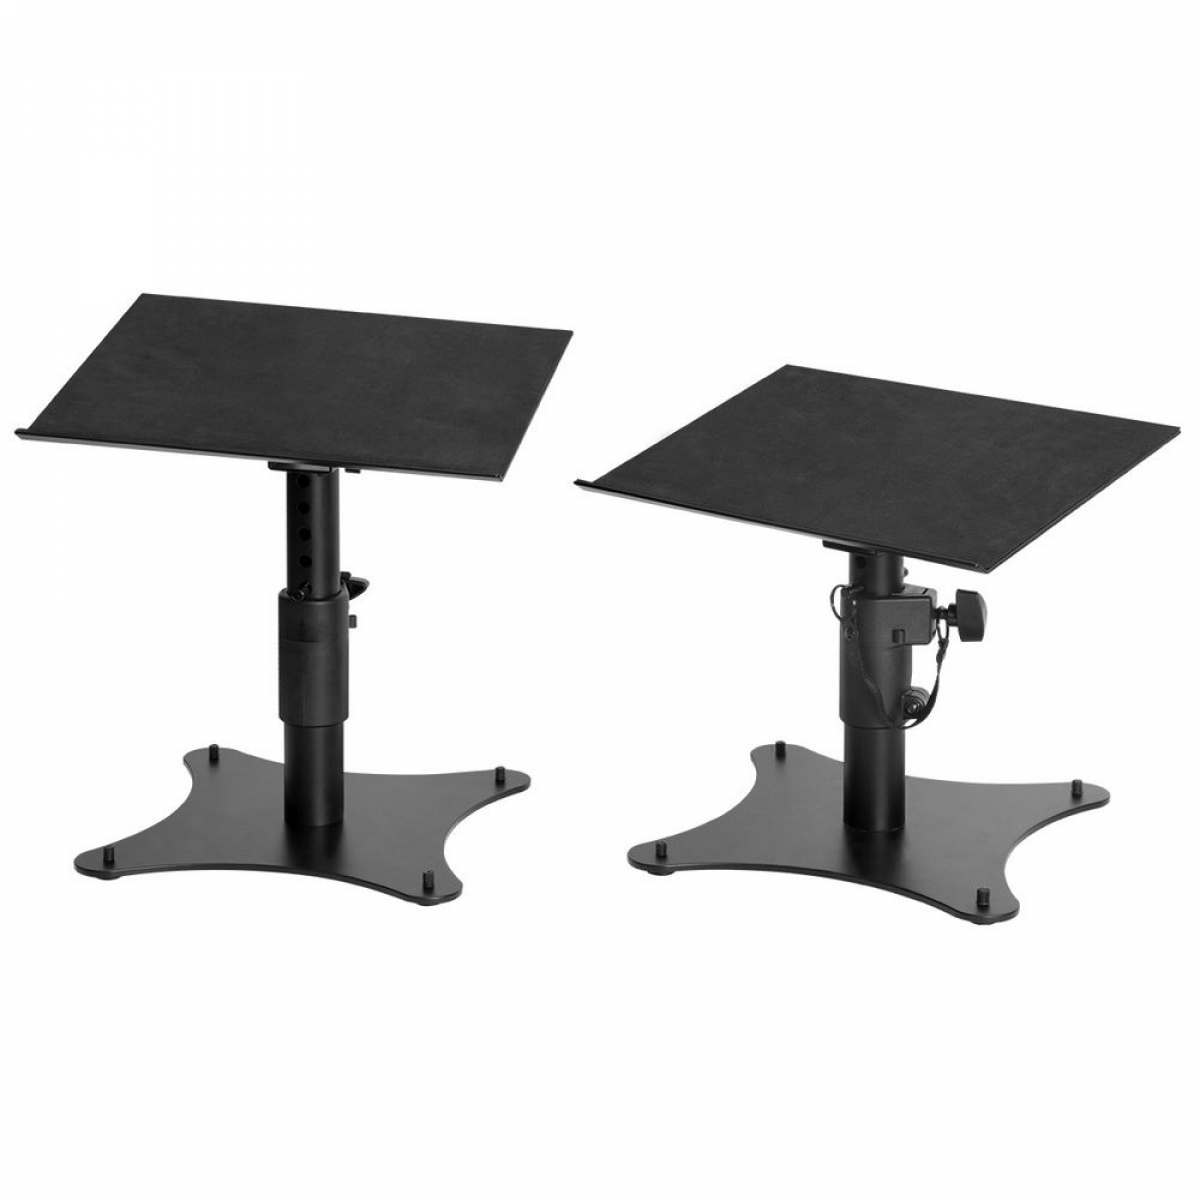 Onstage Sms4500 Desk Monitor Stands Pair